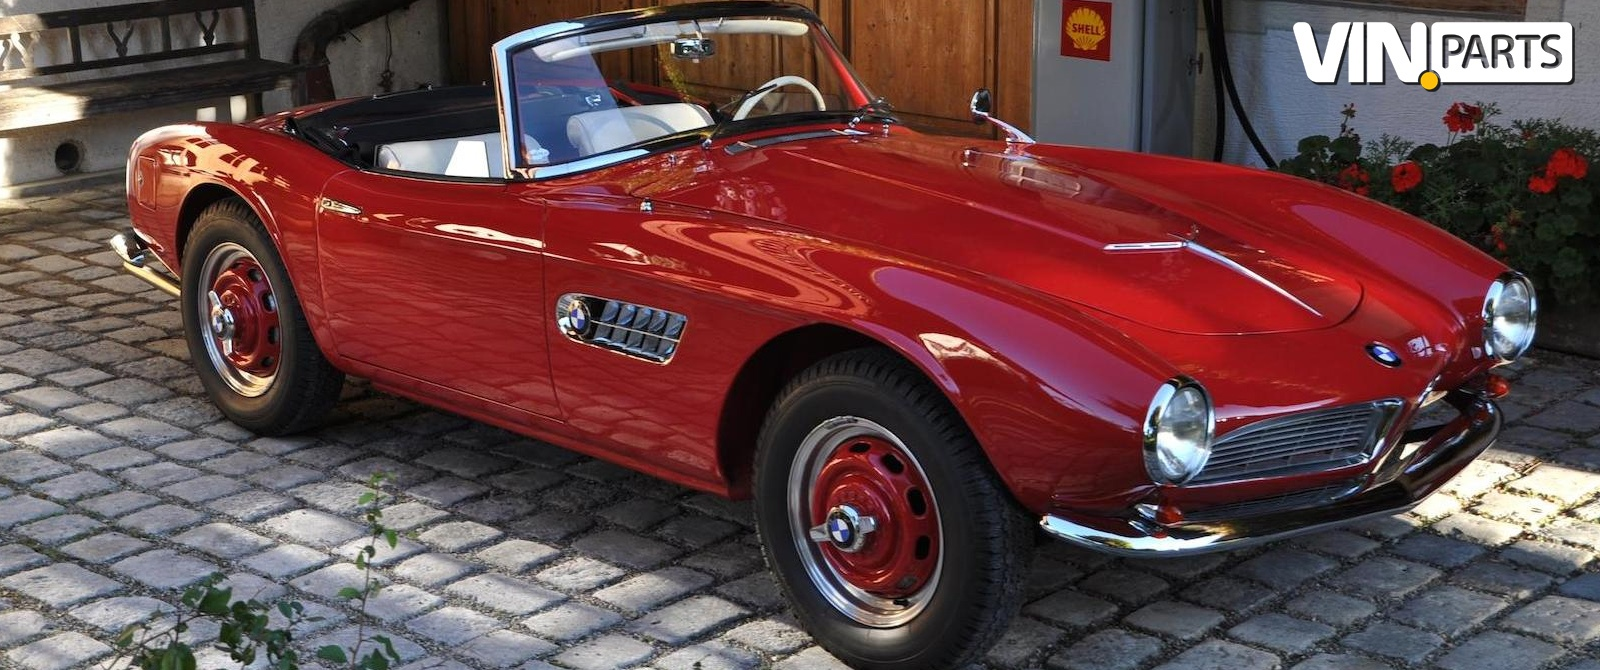 BMW 507 chassis 70100